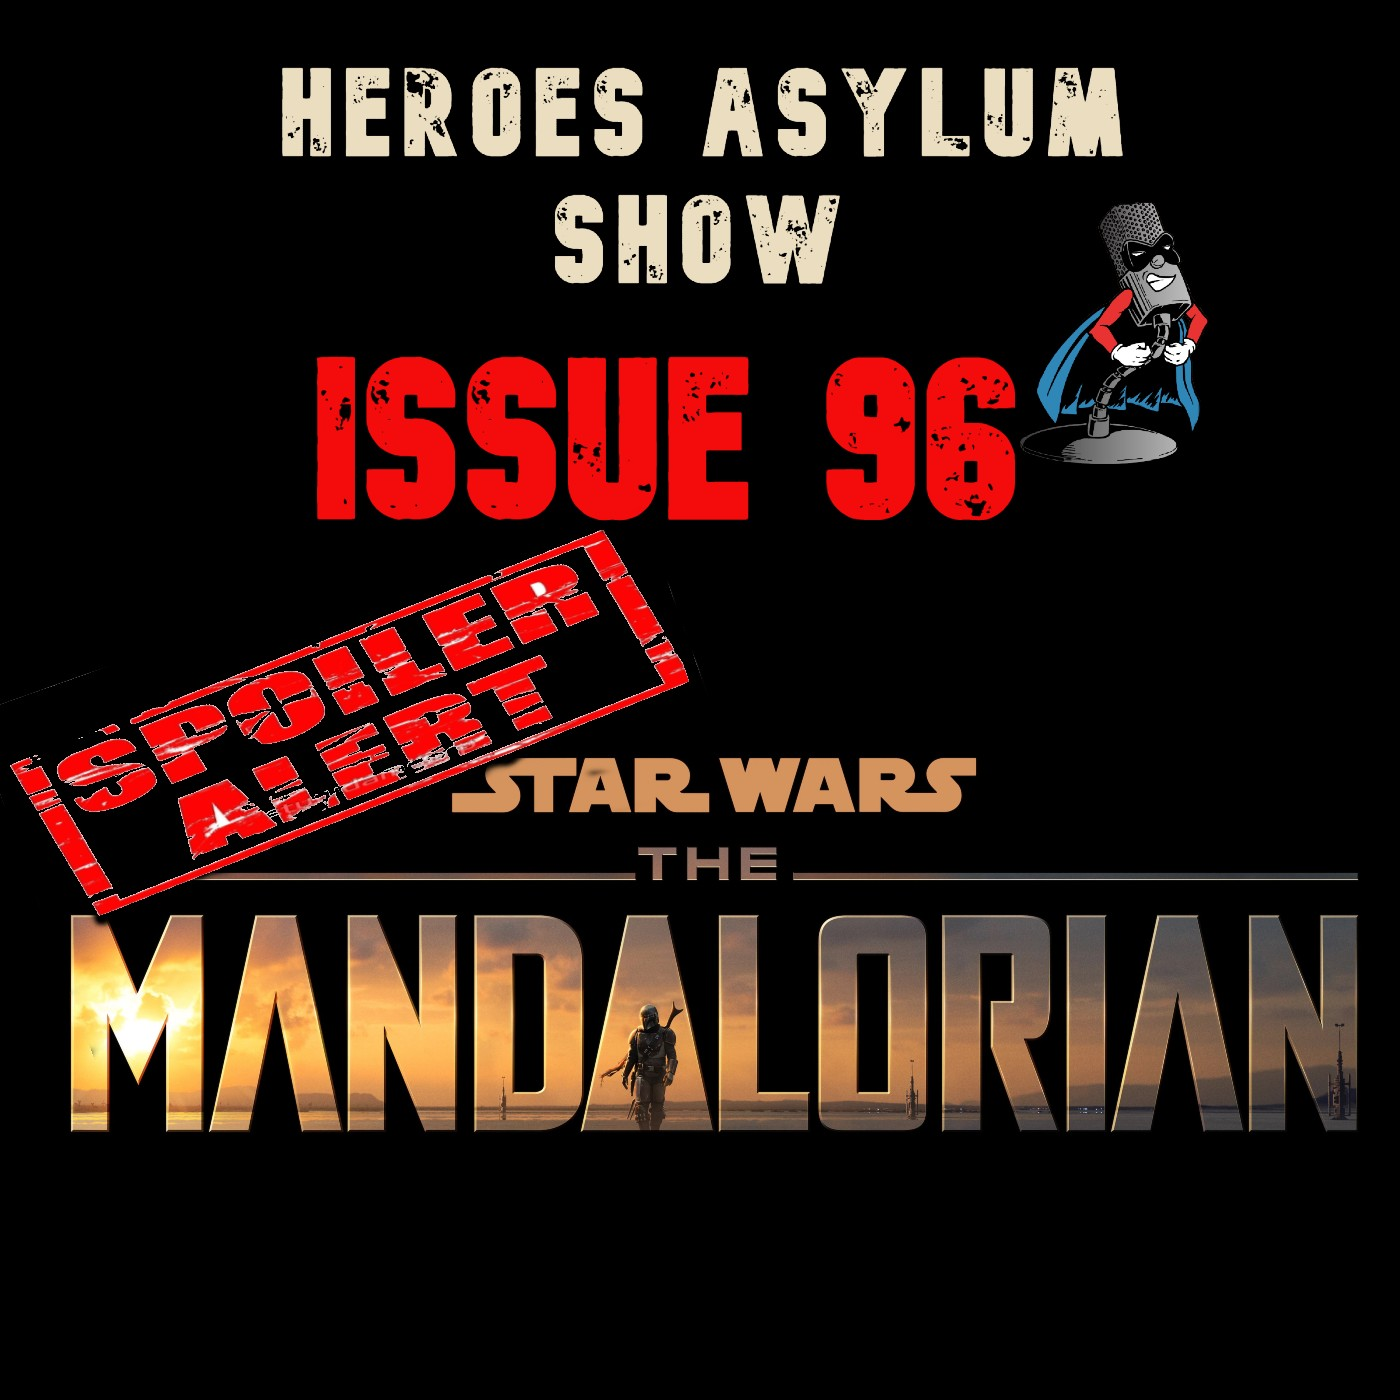 Issue 96 - The Mandalorian Chapter 16 Review